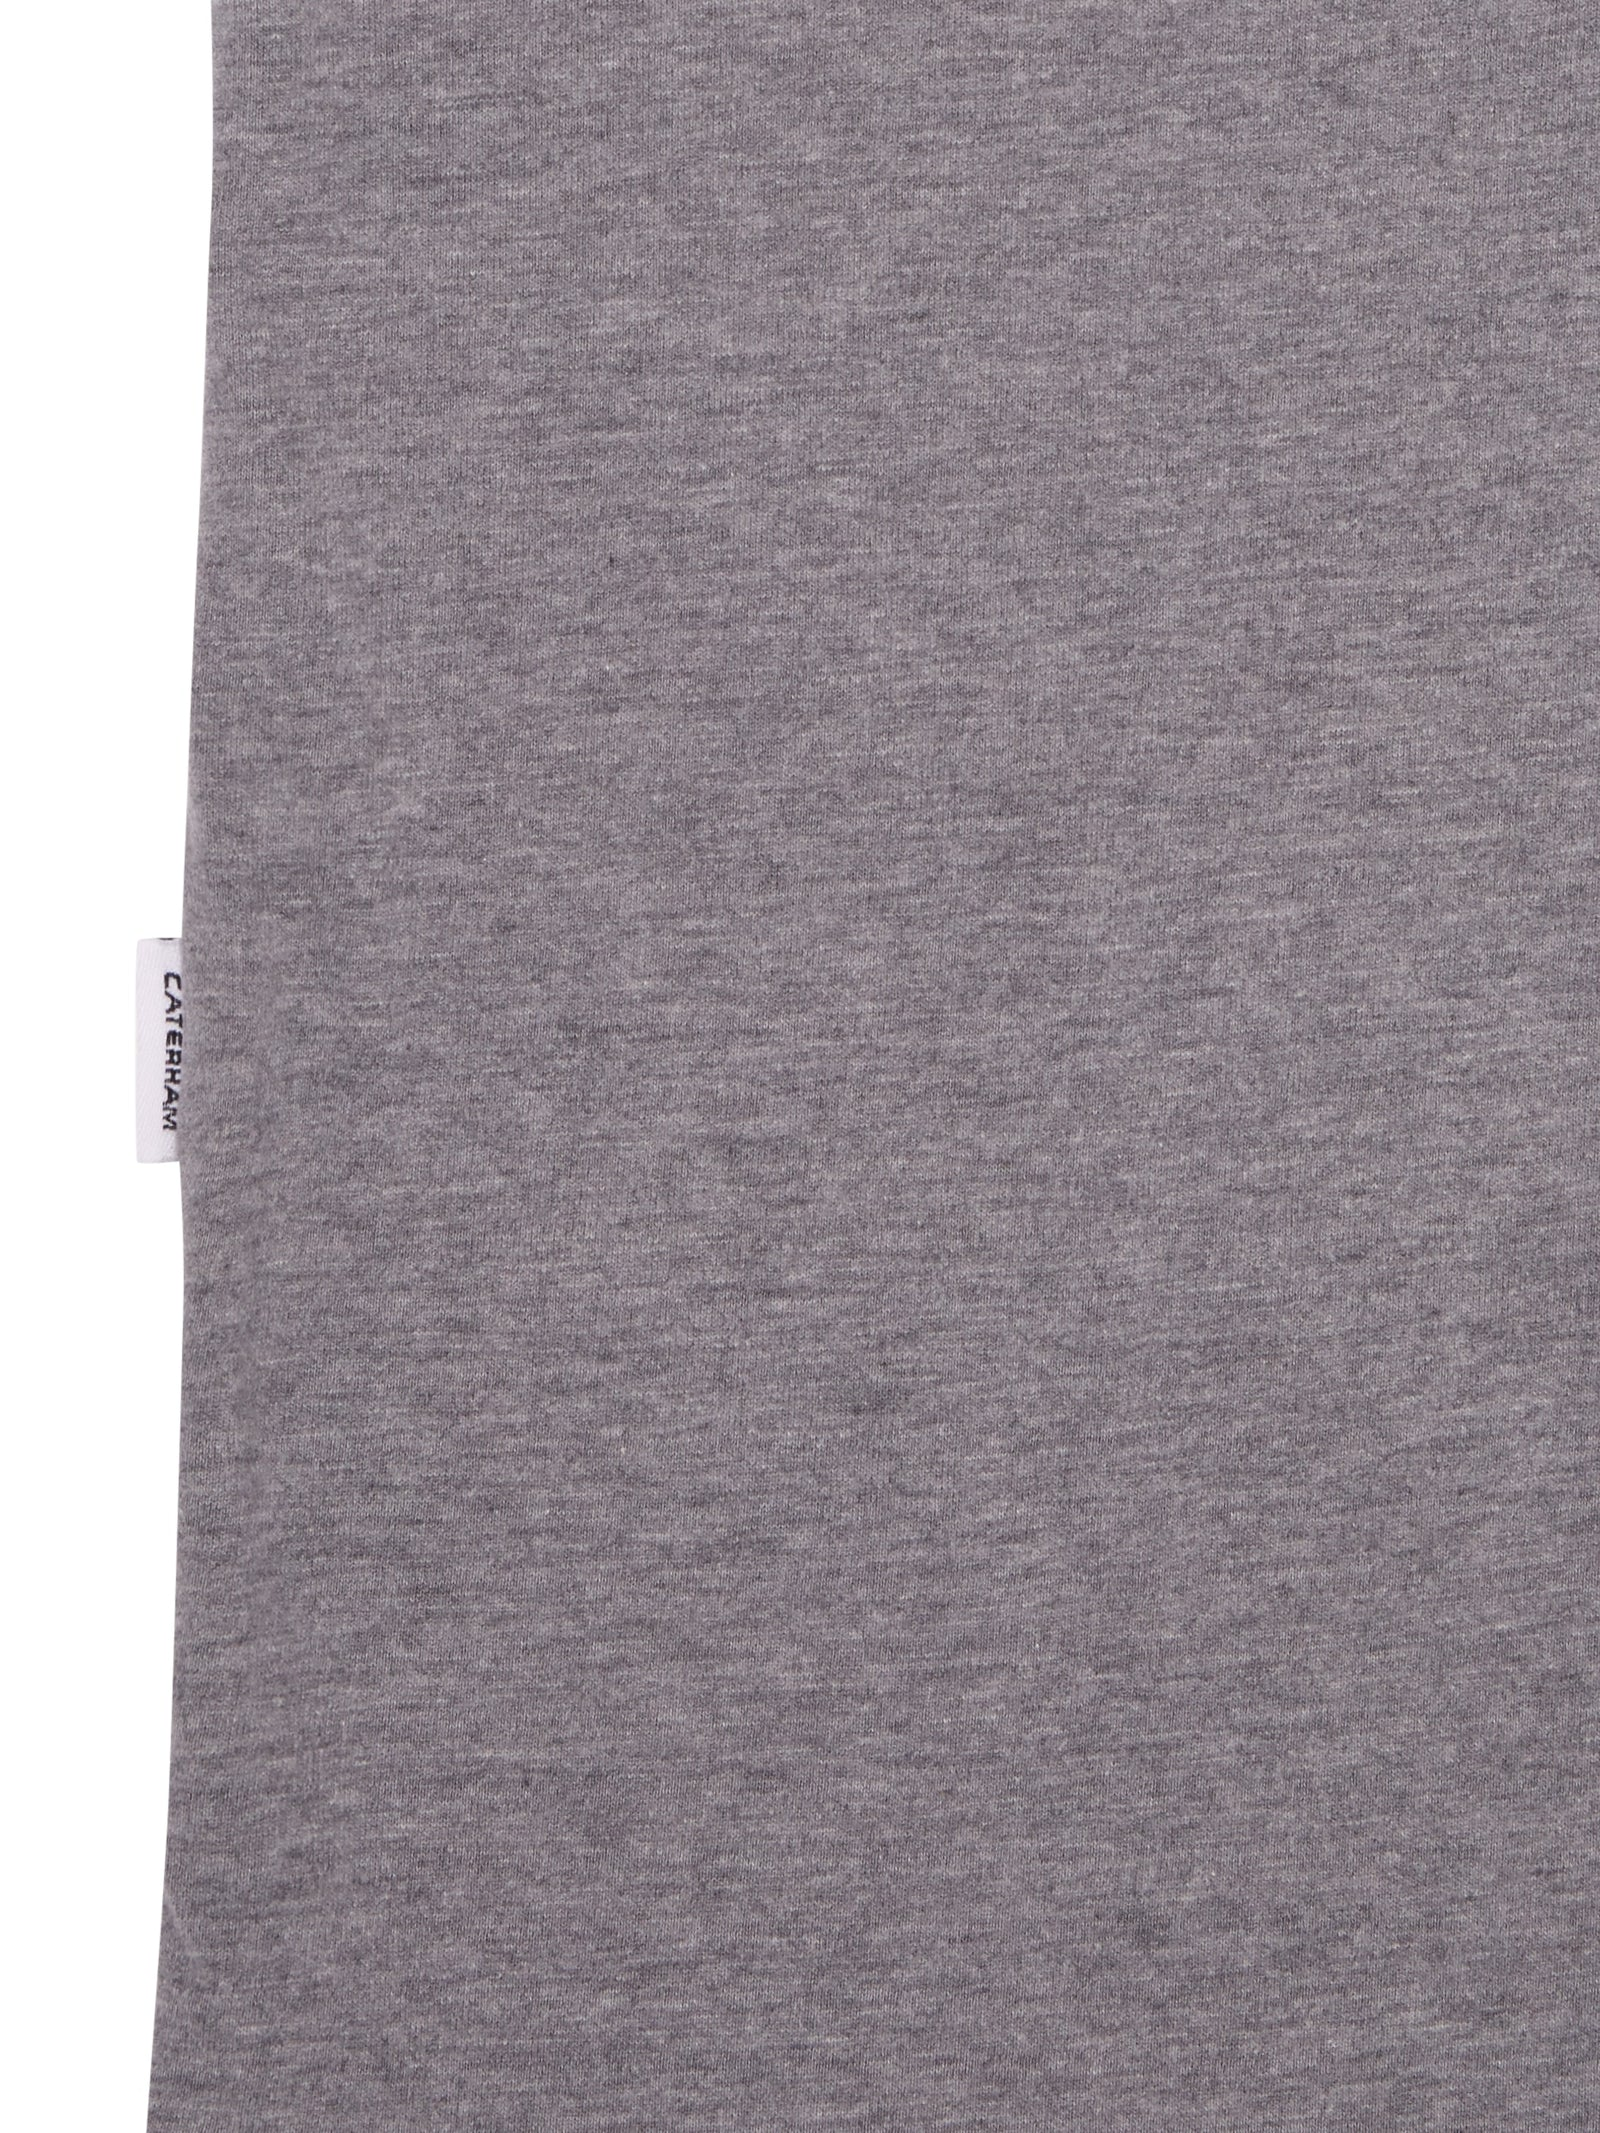 Caterham Cars Tee Grey